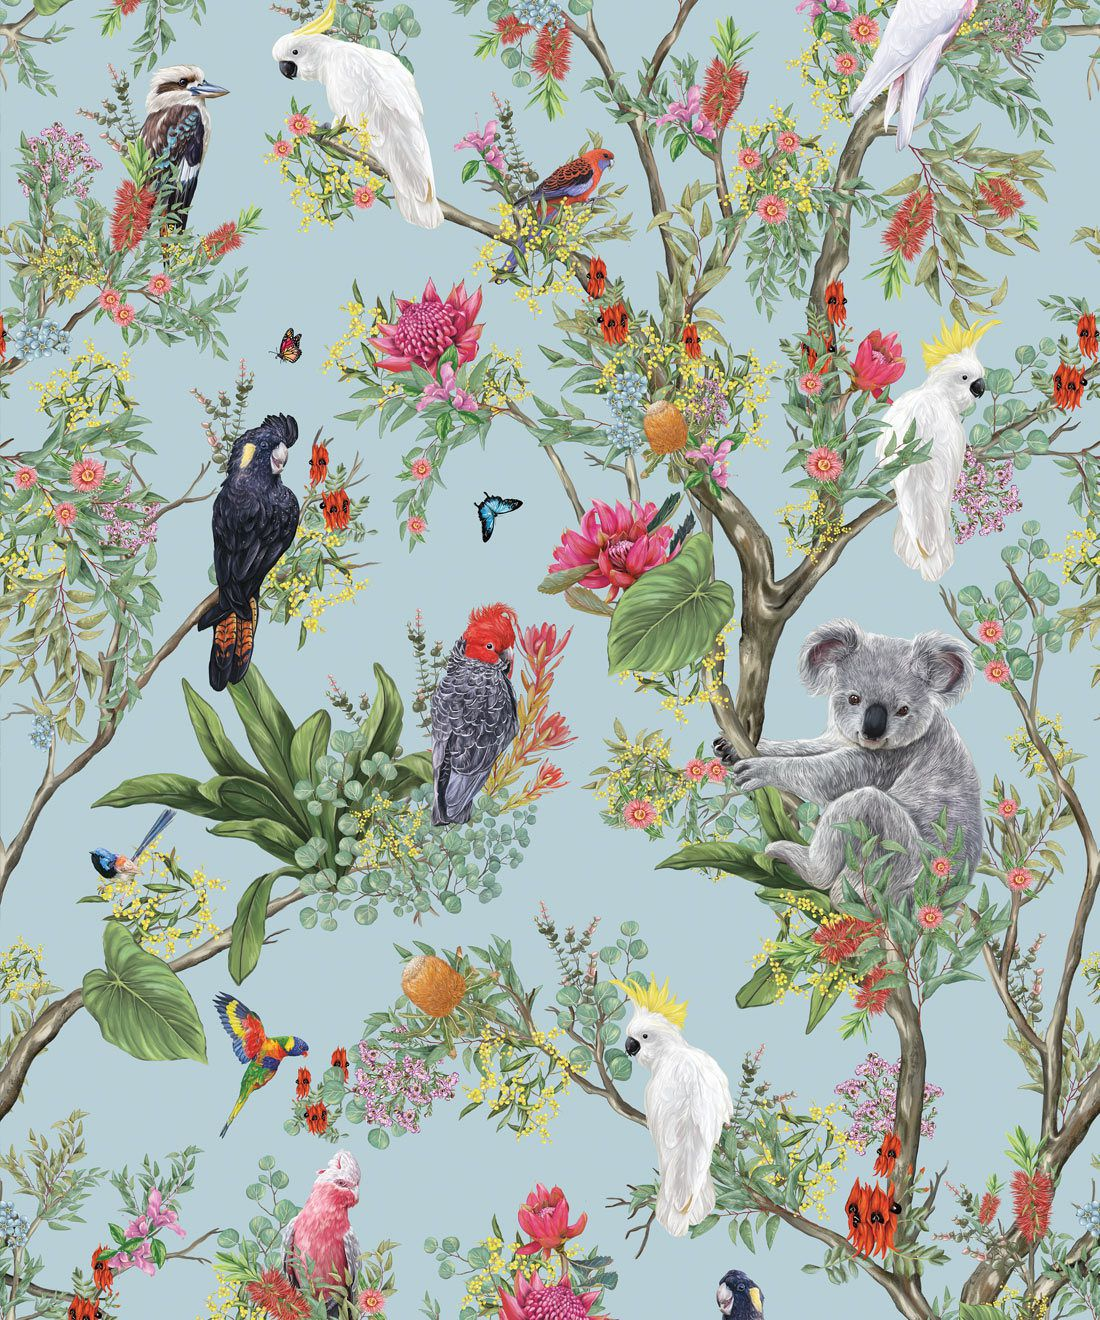 Australia Wallpaper • Cockatoos, Koalas, Parrots, Finches • Milton & King USA • Aqua Wallpaper Swatch